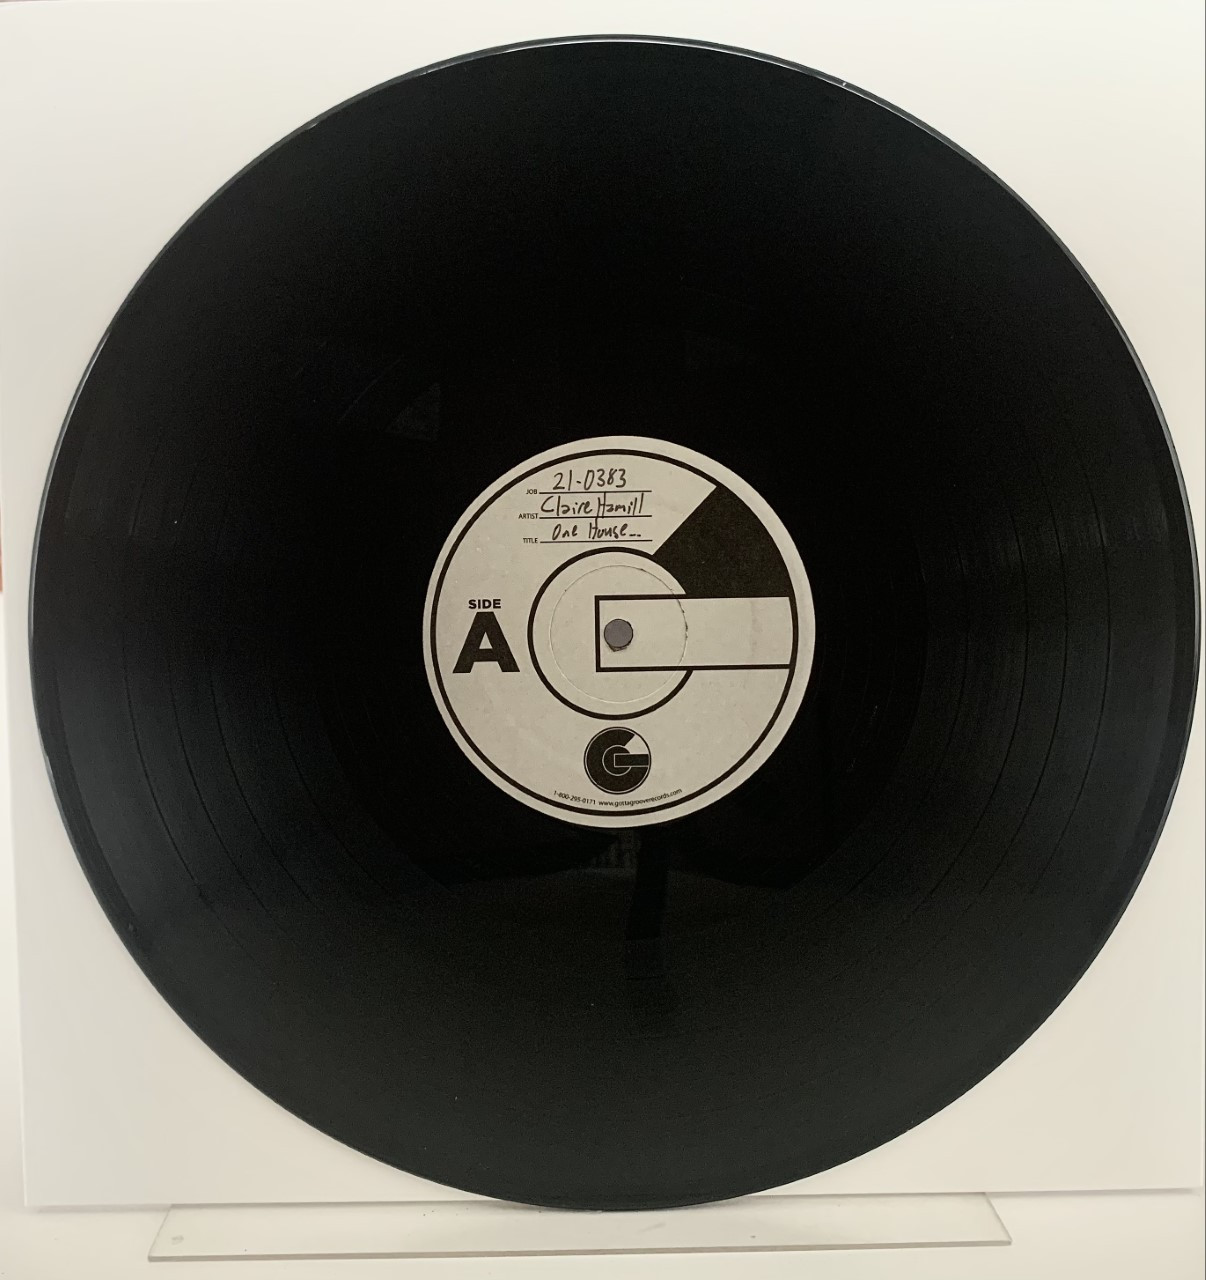 One House Left Standing by Claire Hamill LP test pressing available now.